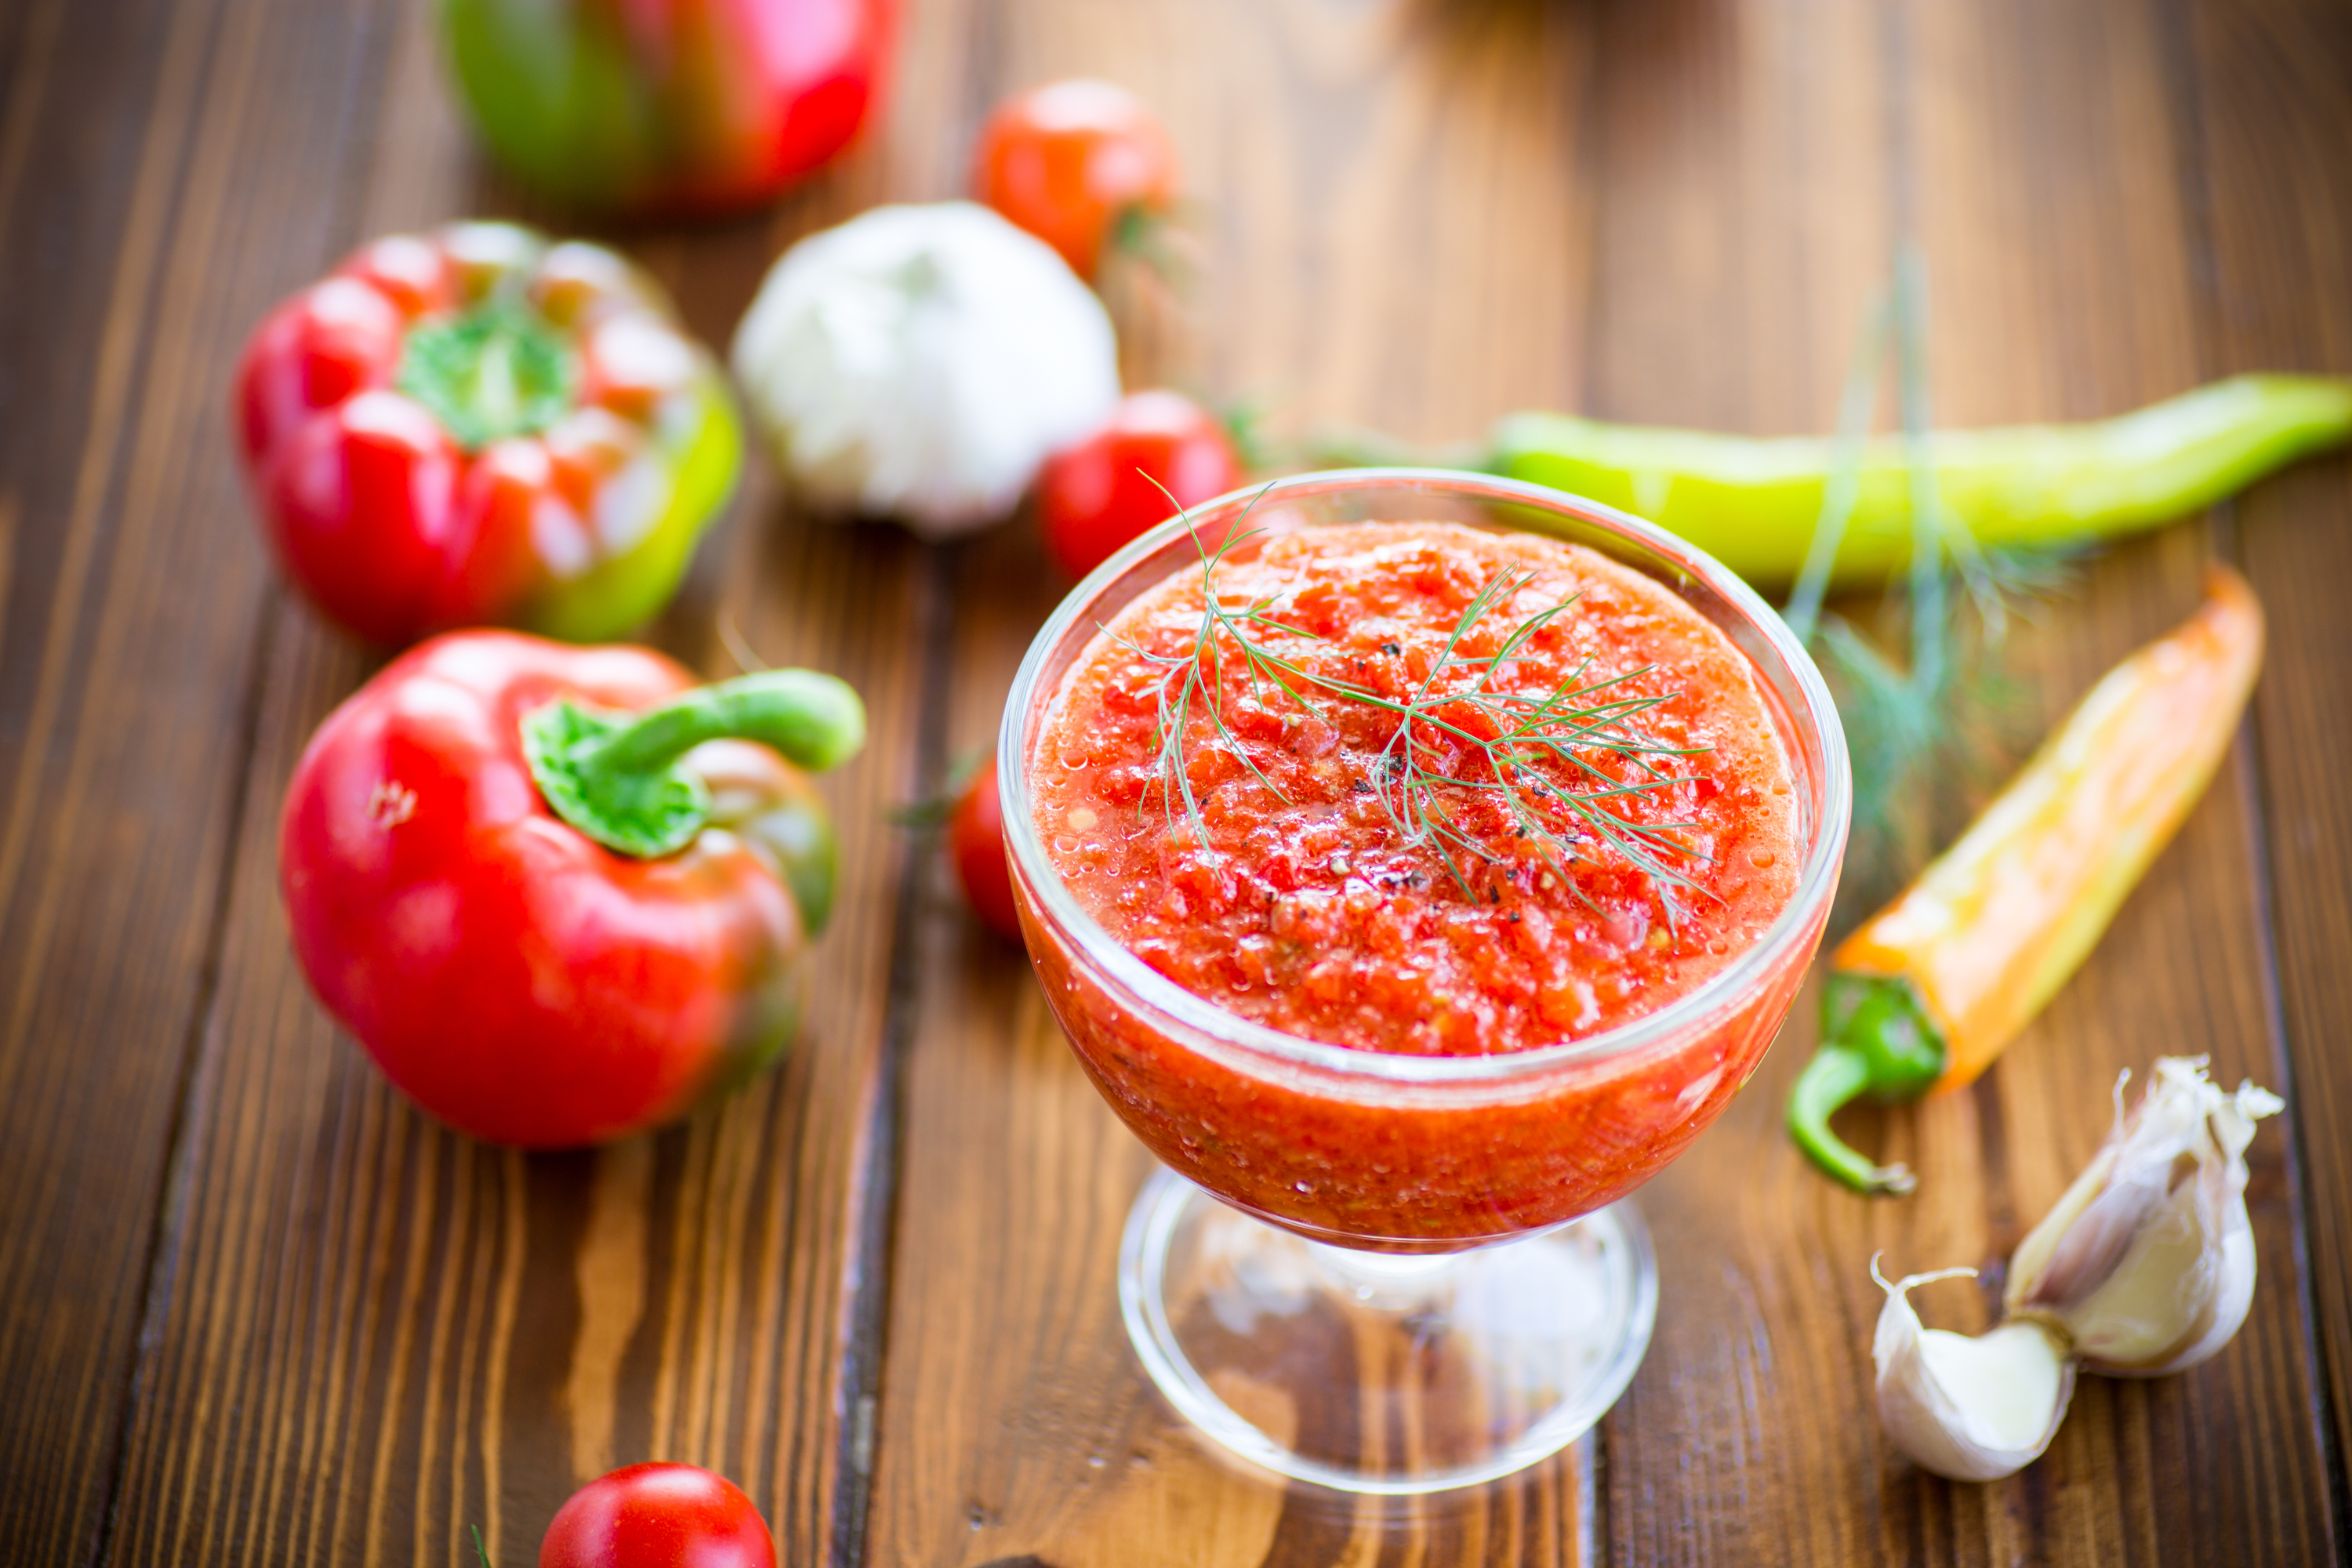 Who doesn't like a good homemade salsa? Here are my favorite recipes with home canned tomatoes. You will love them!